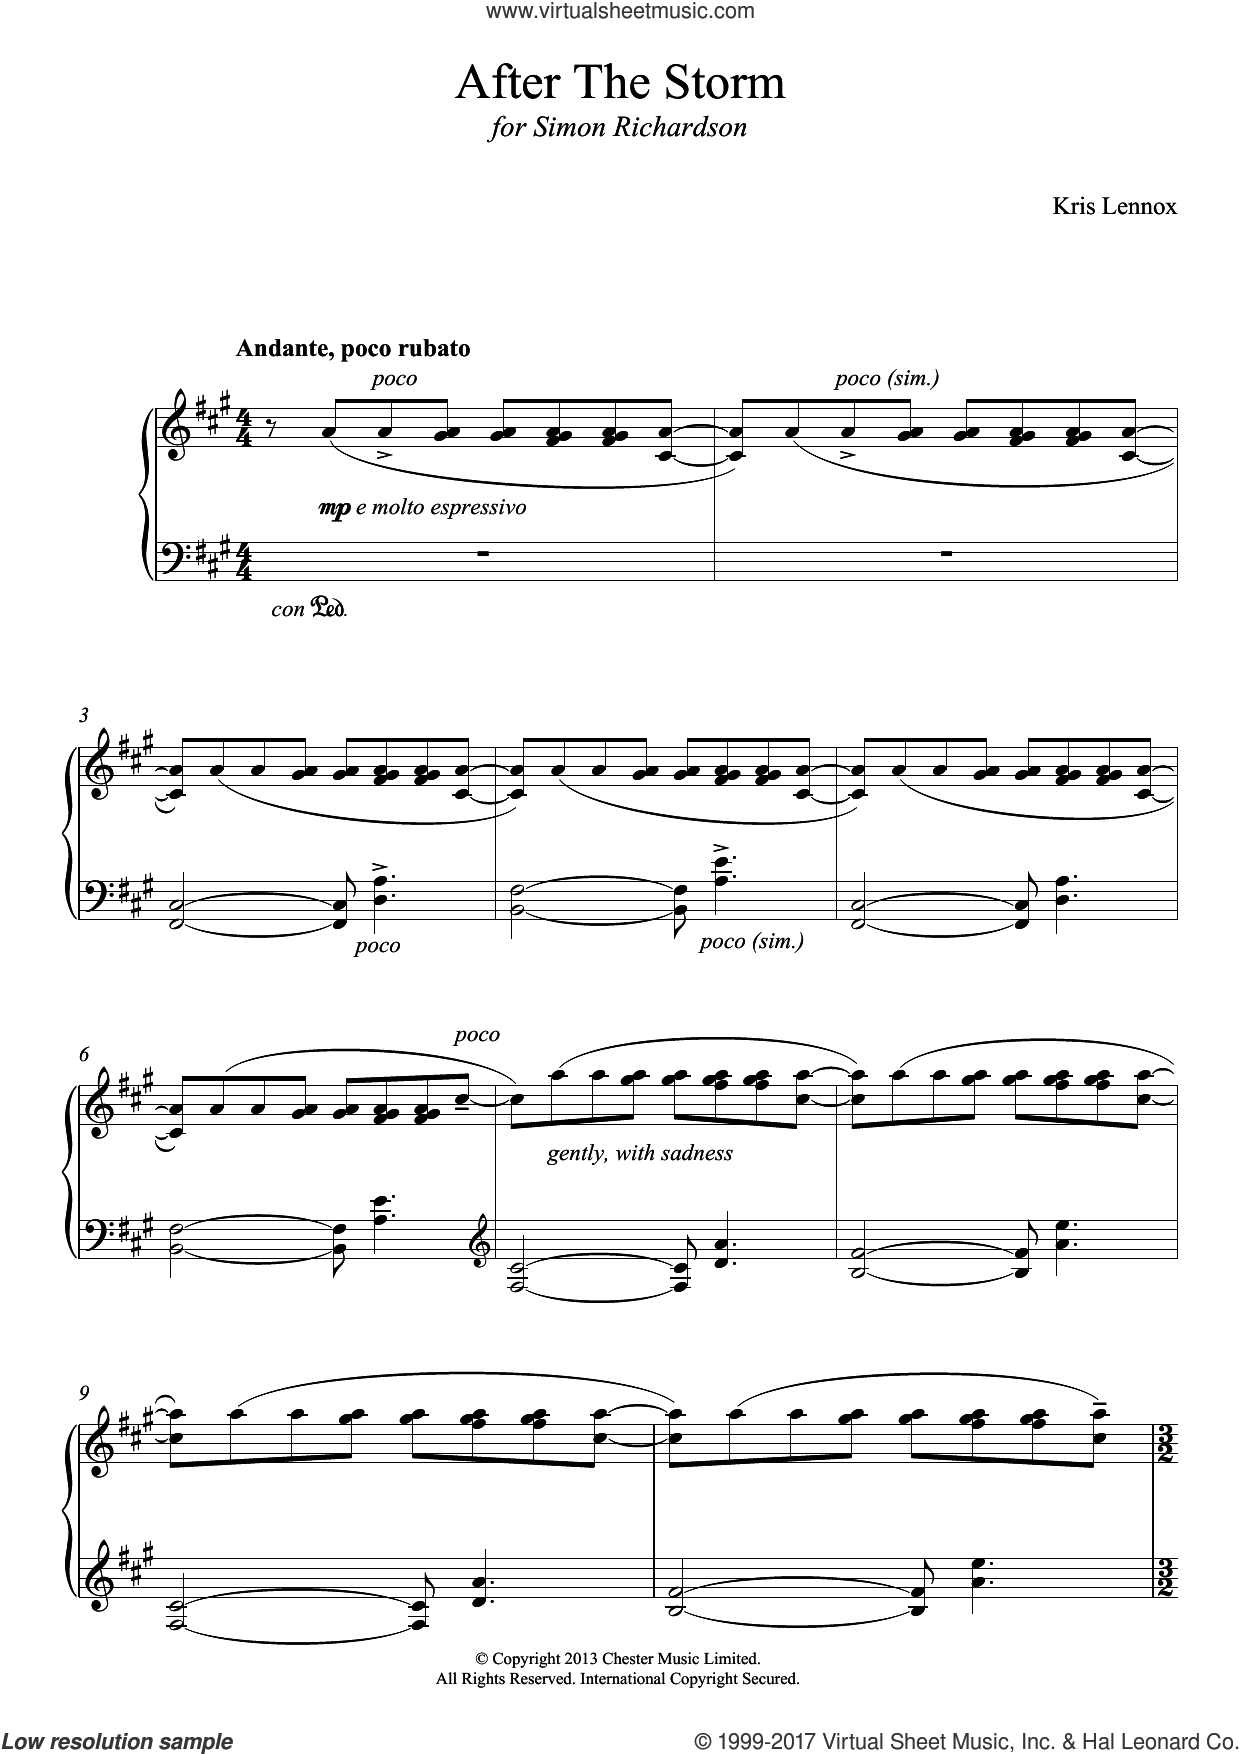 After The Storm sheet music for piano solo by Kris Lennox, classical score, intermediate skill level